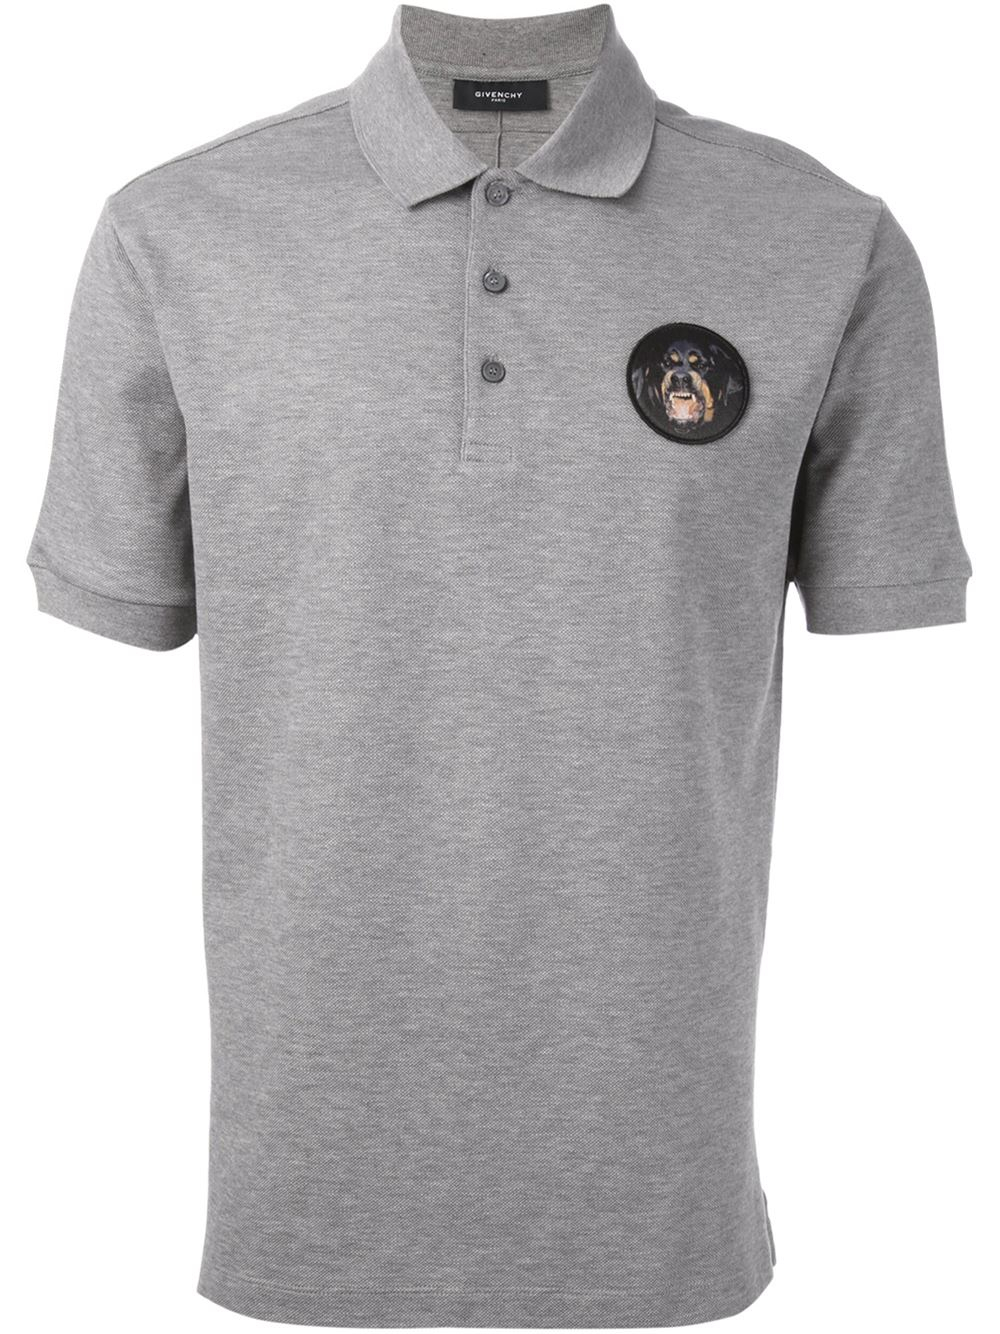 detailed pictures 0c260 0bd09 Givenchy Mens Polo Shirt | Mount Mercy University